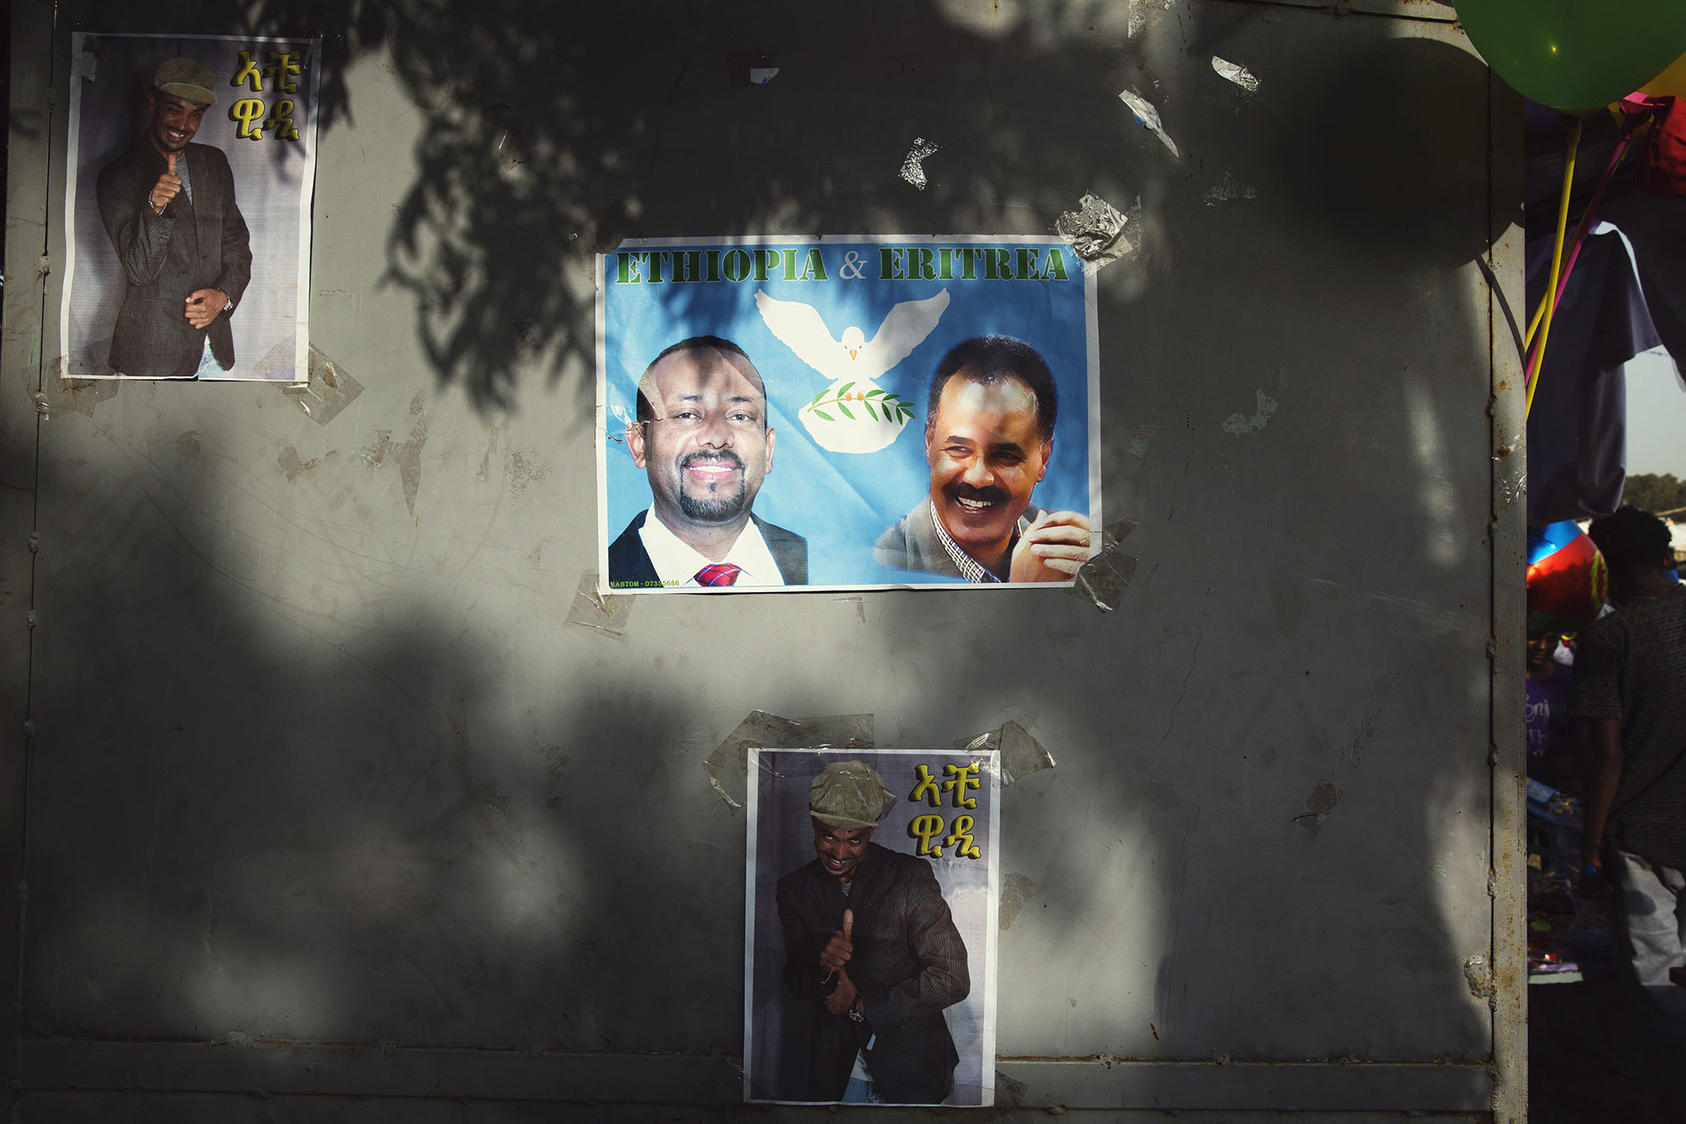 A poster of Prime Minister Abiy Ahmed of Ethiopia, left, and President Isaias Afwerki of Eritrea is displayed during a festival in Asmara, Eritrea, Sept. 7, 2018. (Malin Fezehai/The New York Times)